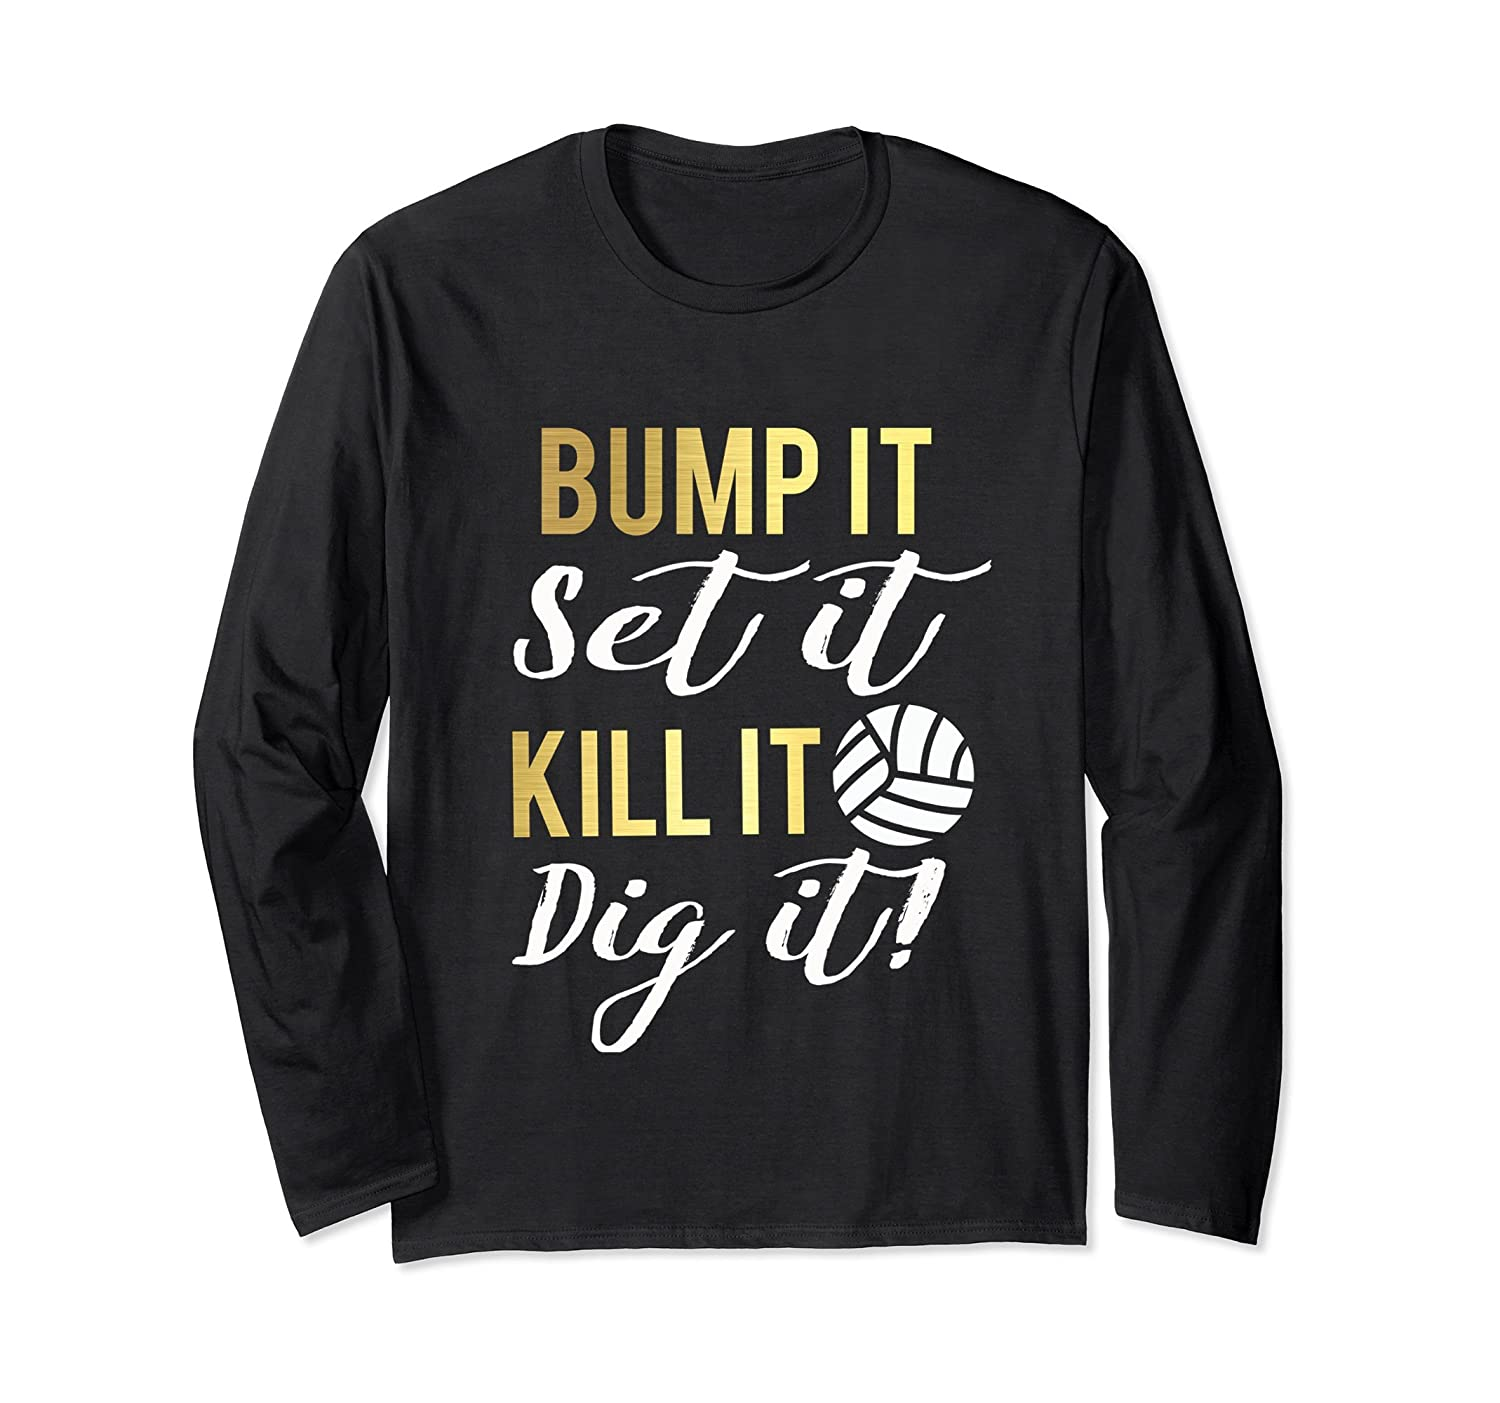 54900466868 Funny Volleyball Sayings For Shirts - BCD Tofu House